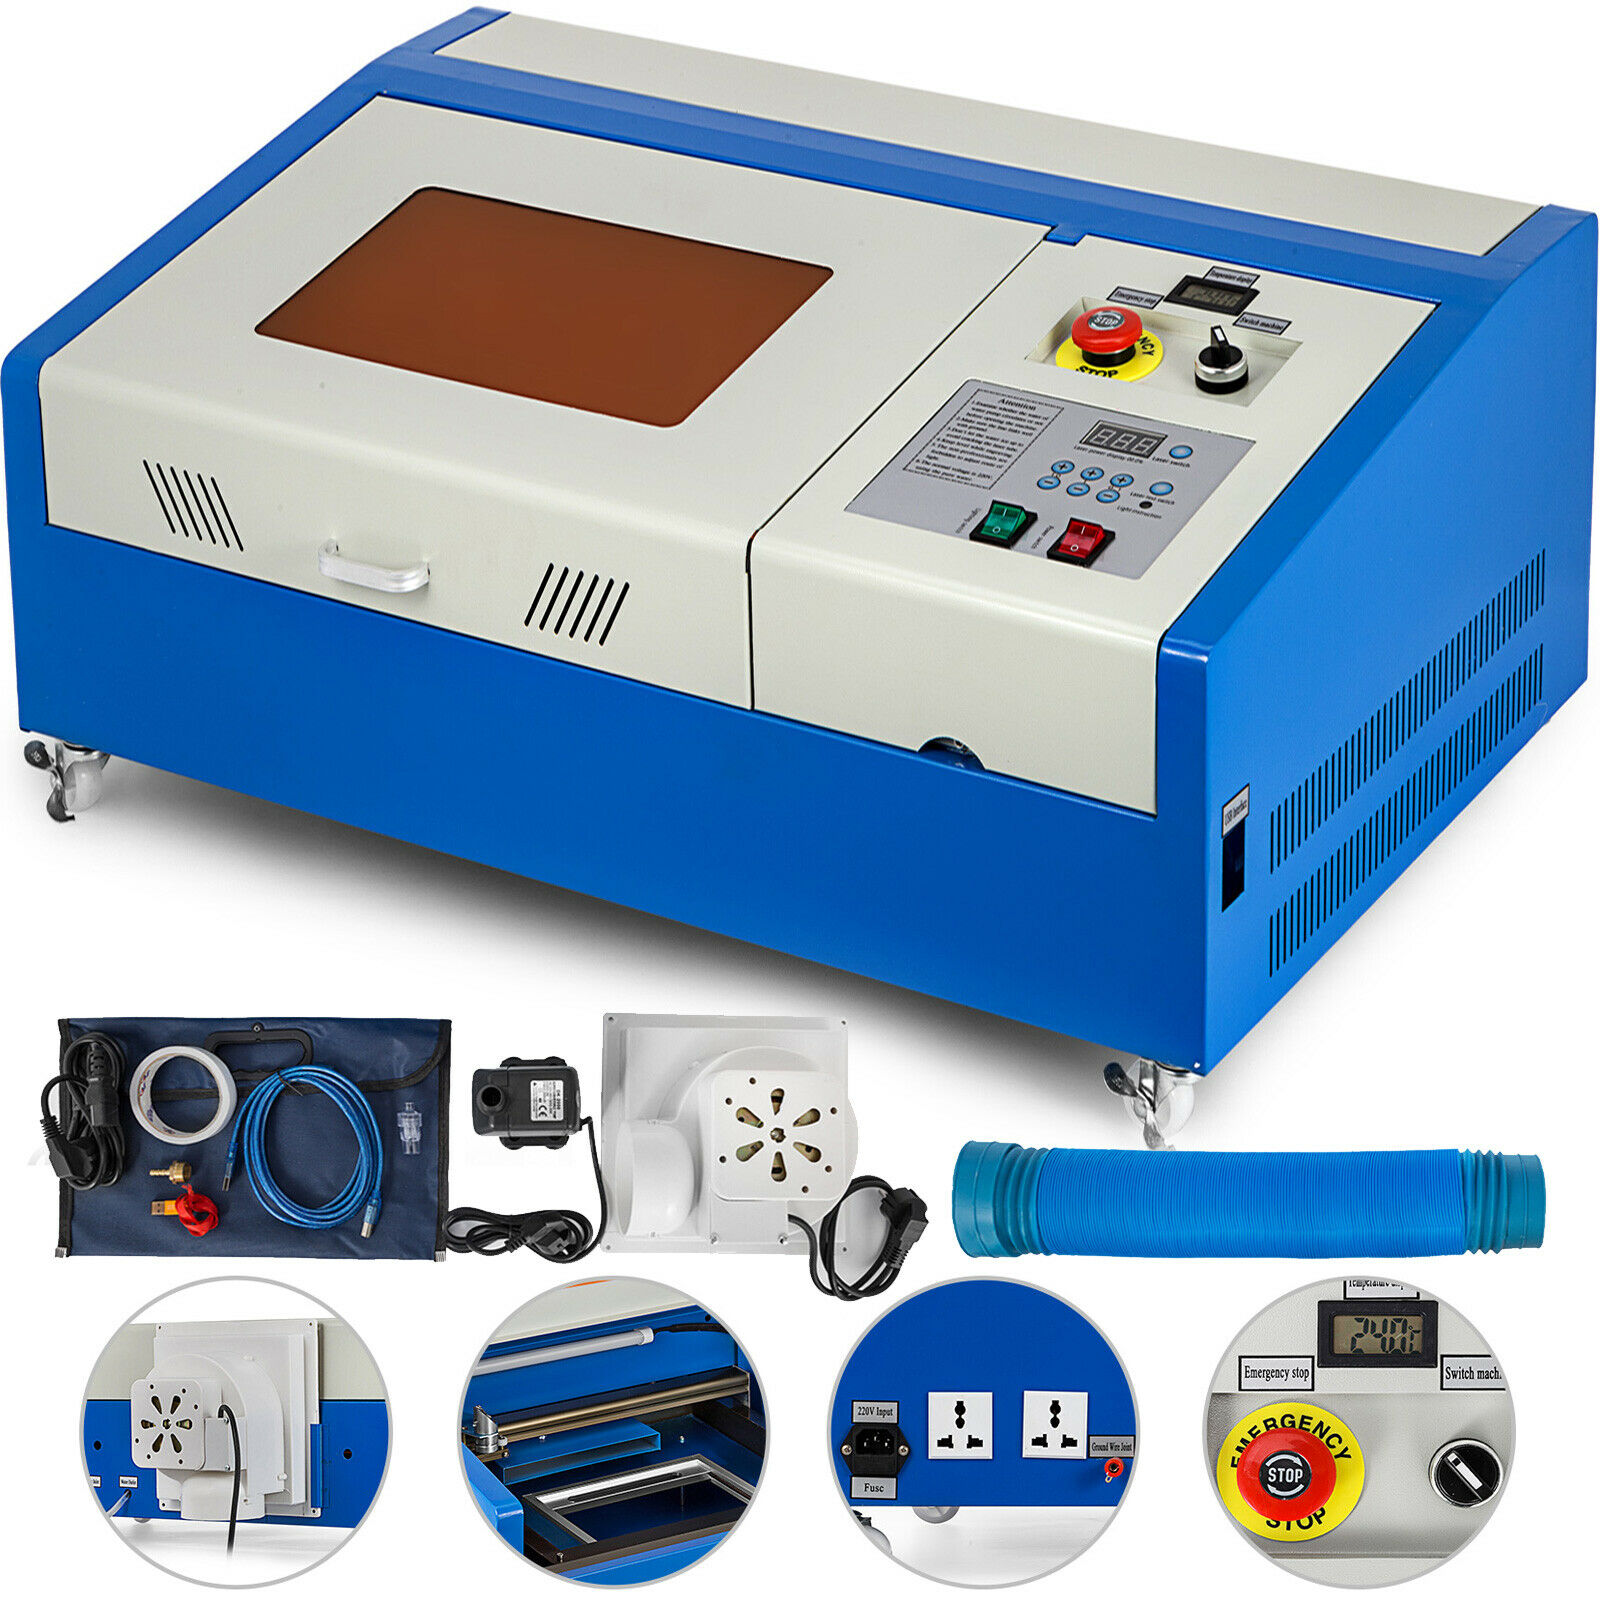 EU Warehouse 40W CO2 Laser Machine Cutting Machine Laser Engraving Machine